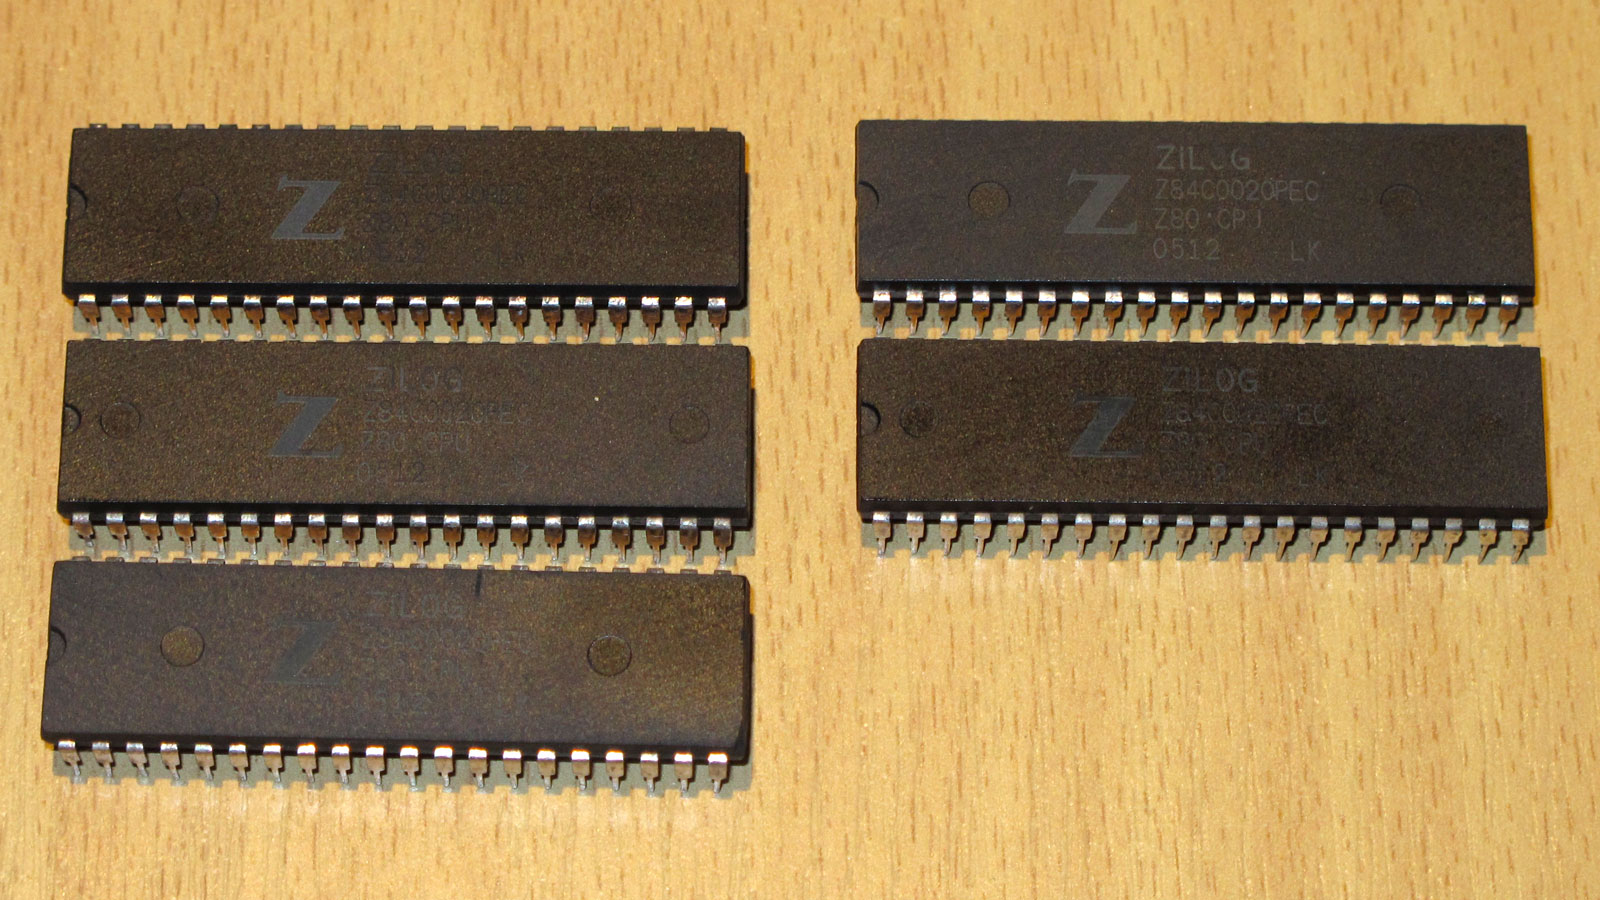 Z80C0020_CPU_fake_hkpartspipe2011_all5.jpg